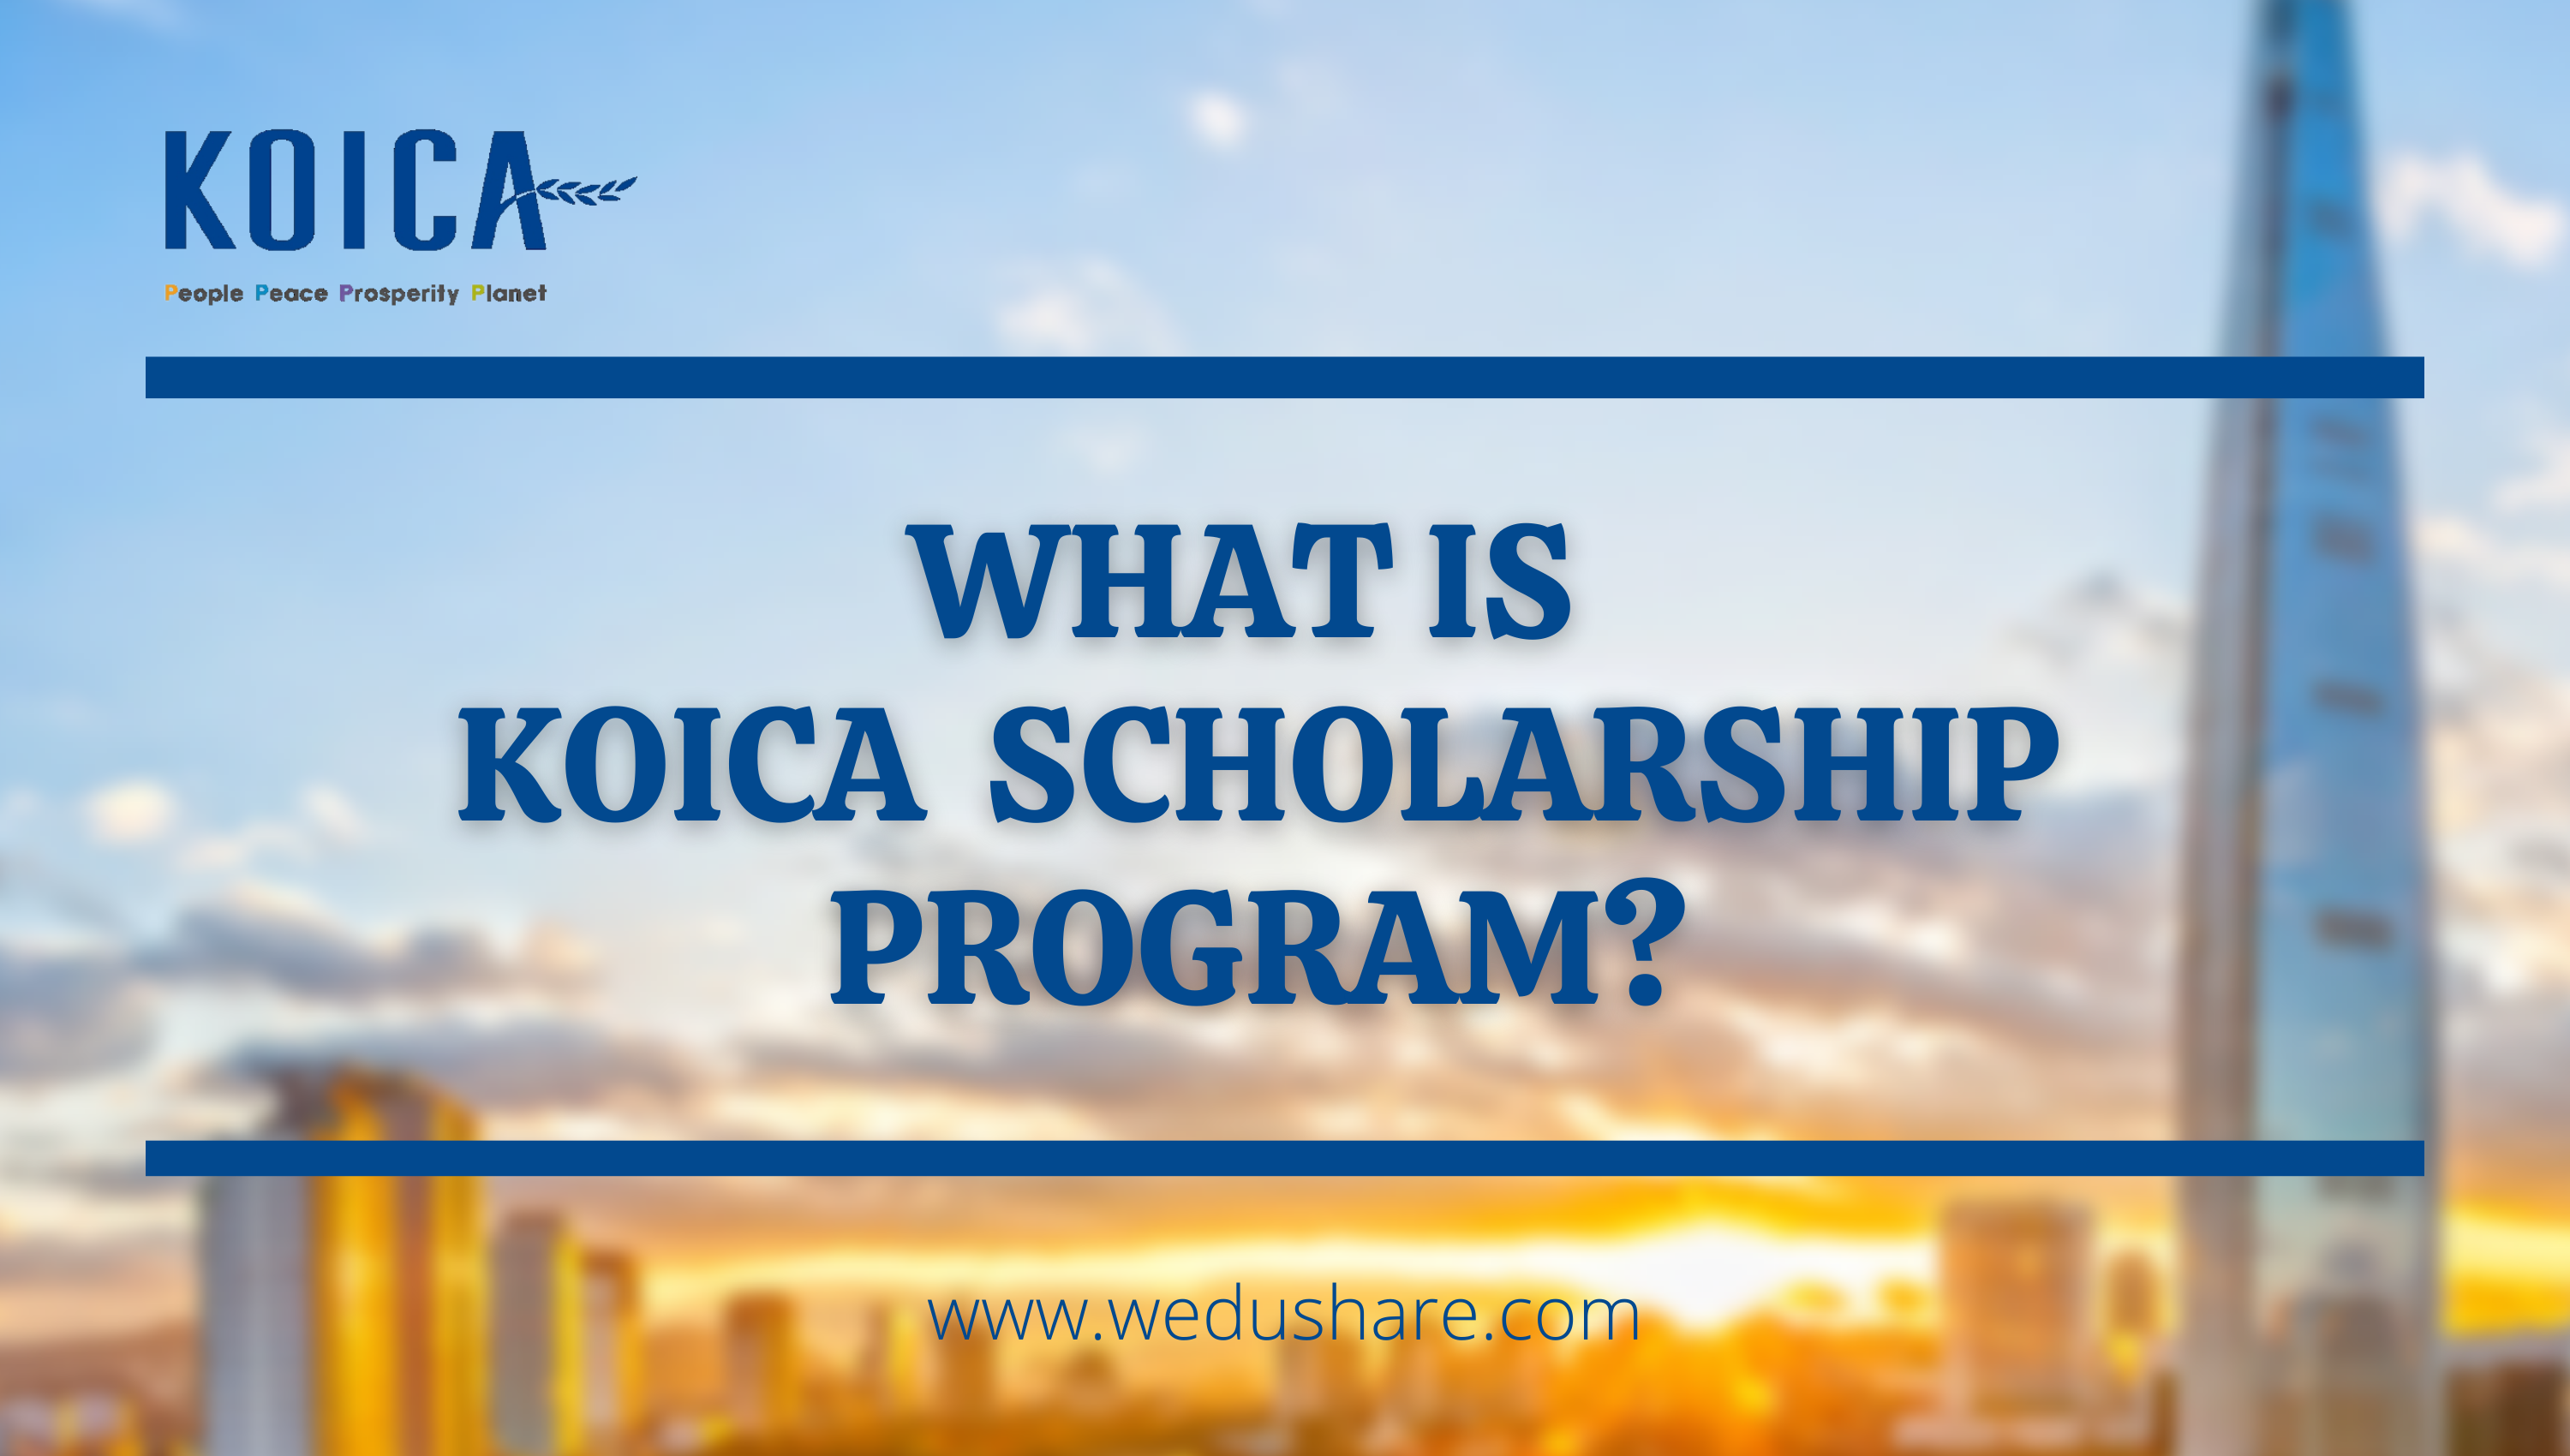 What is KOICA Scholarship Program?